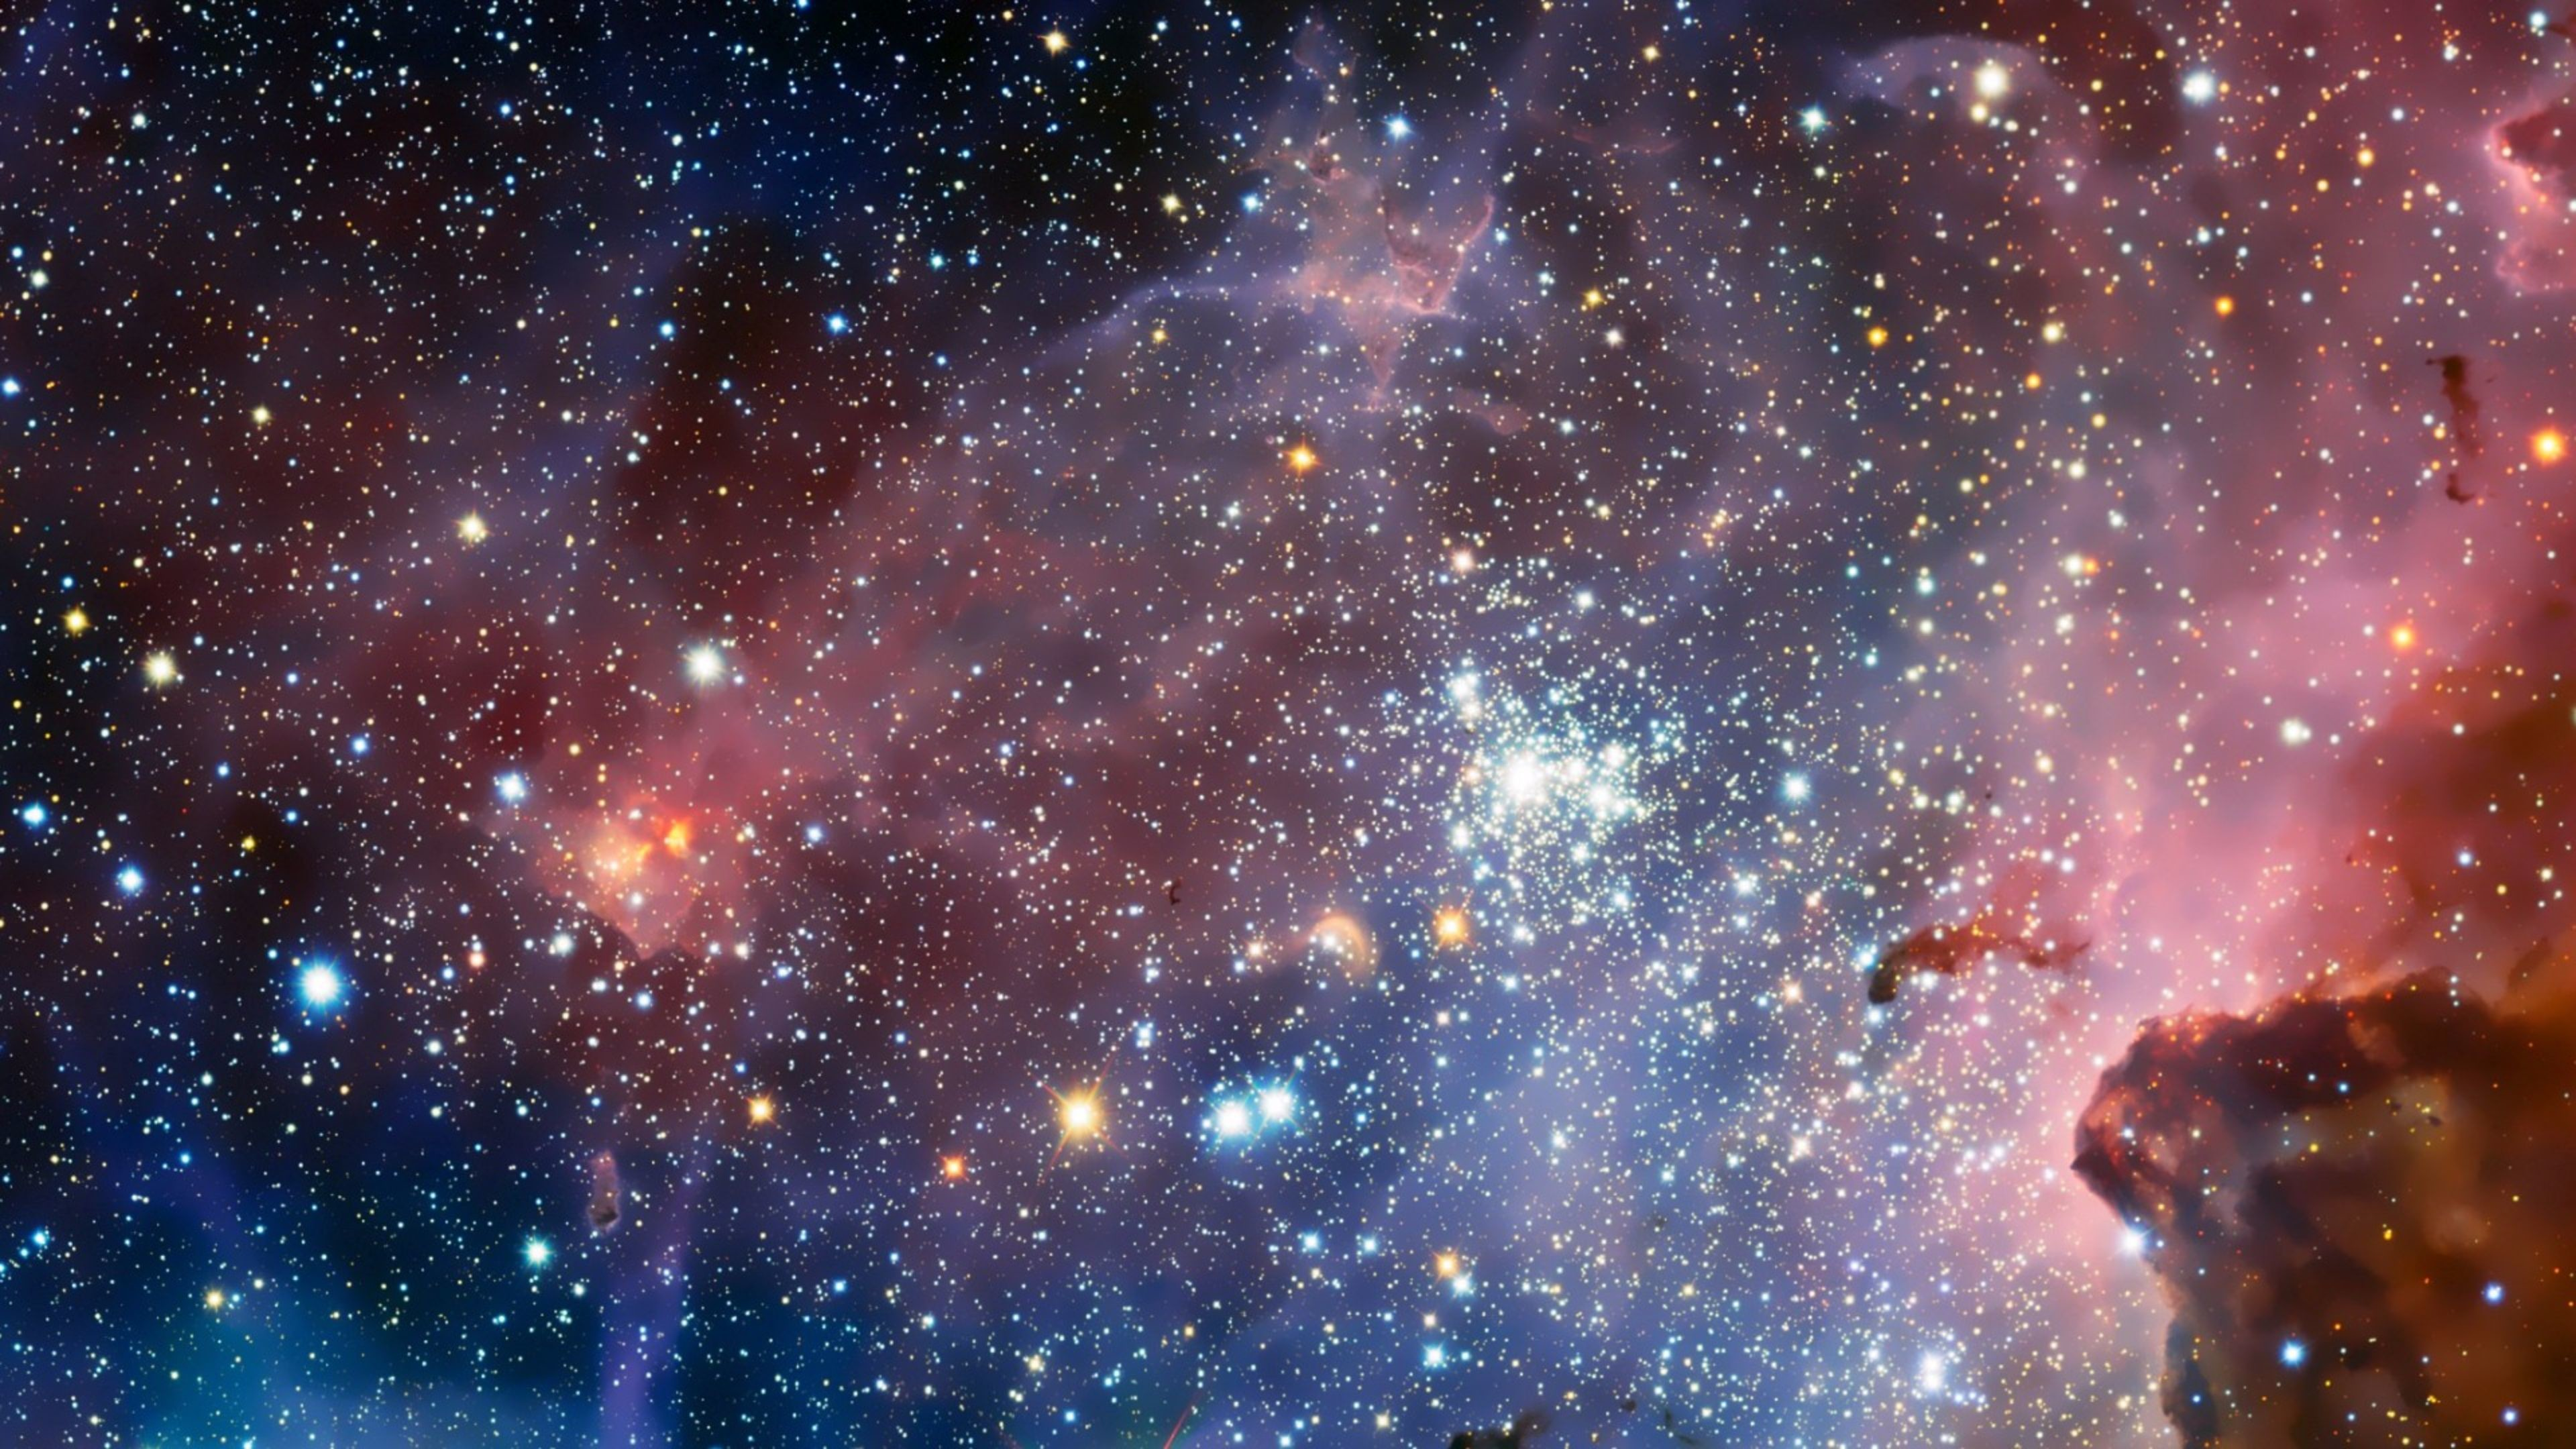 Deep Space Wallpaper Background 59 Images